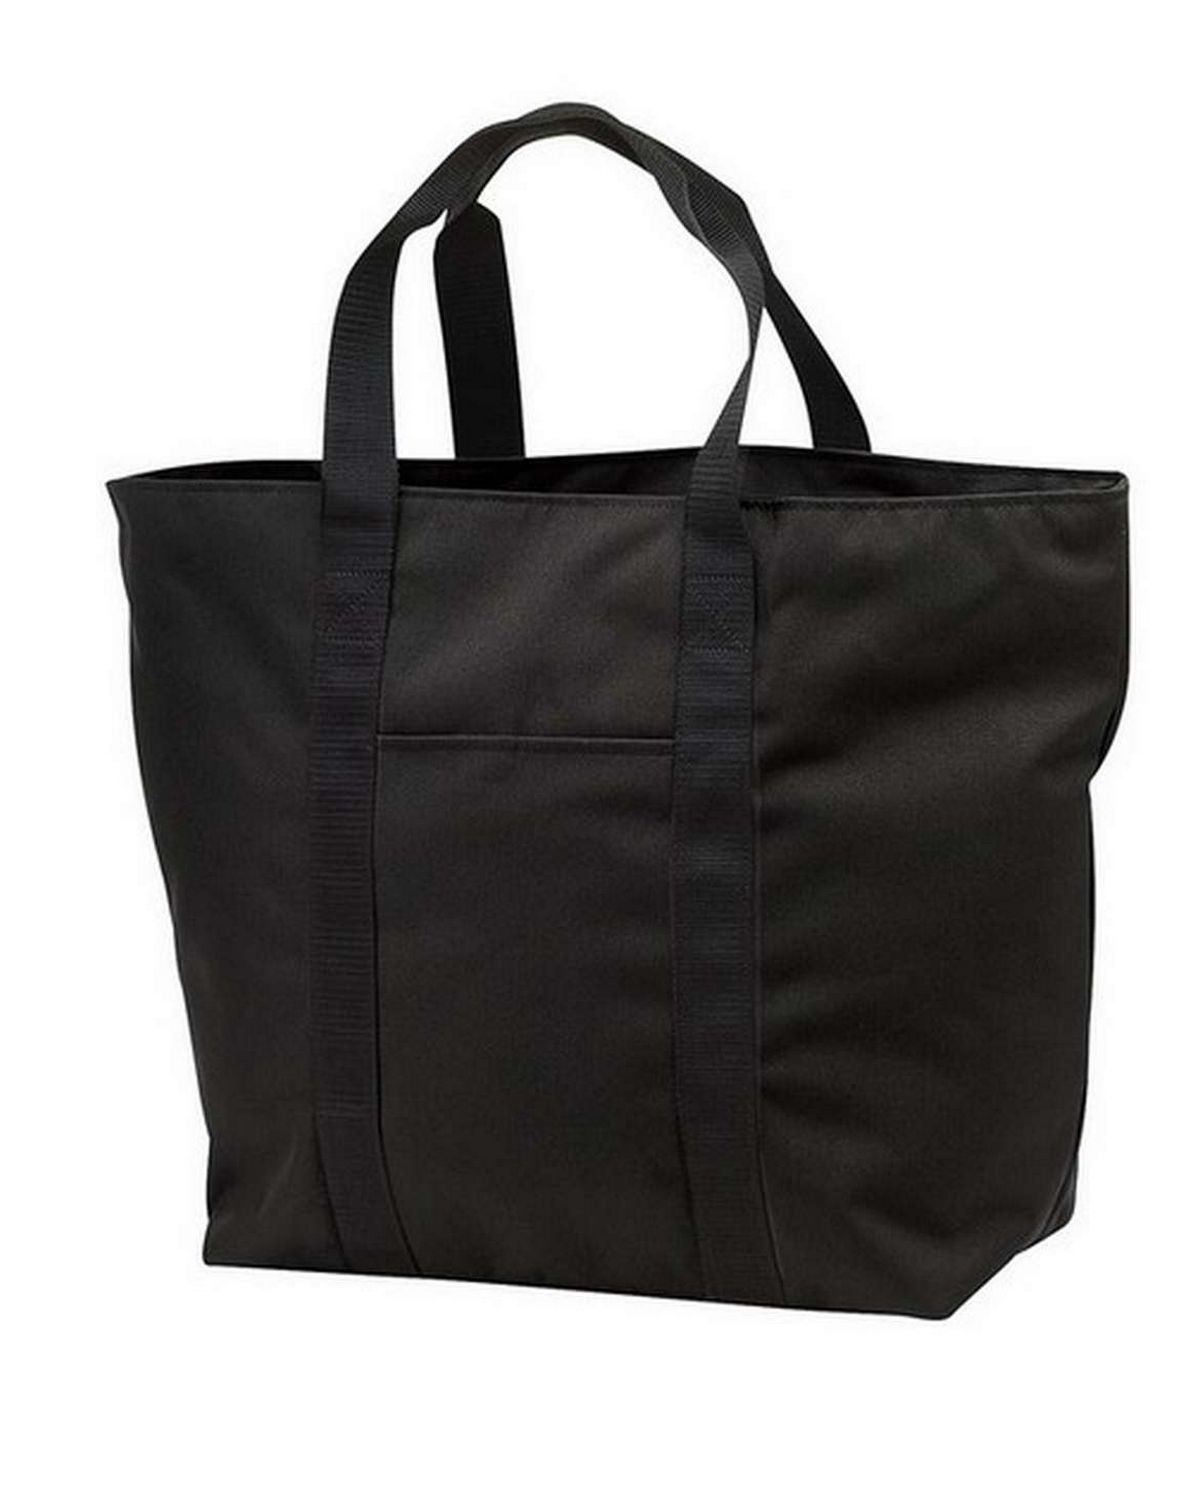 Port Authority B5000 Improved All Purpose Tote